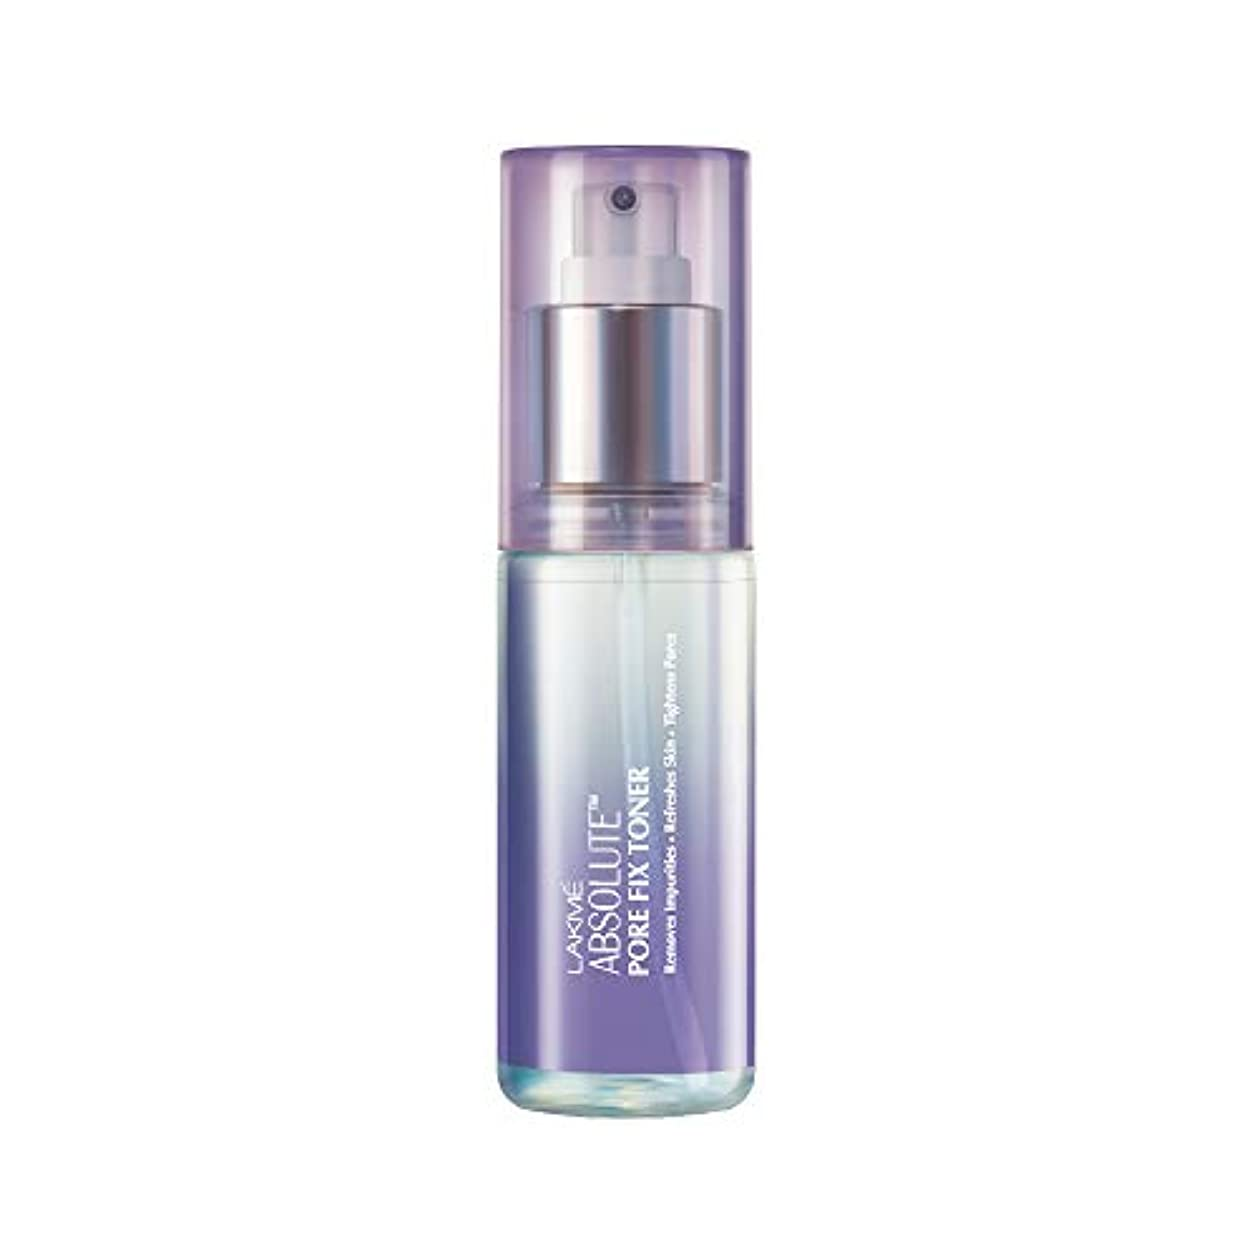 拍車満足させるゴミ箱Lakme Absolute Pore Fix Toner, 60ml